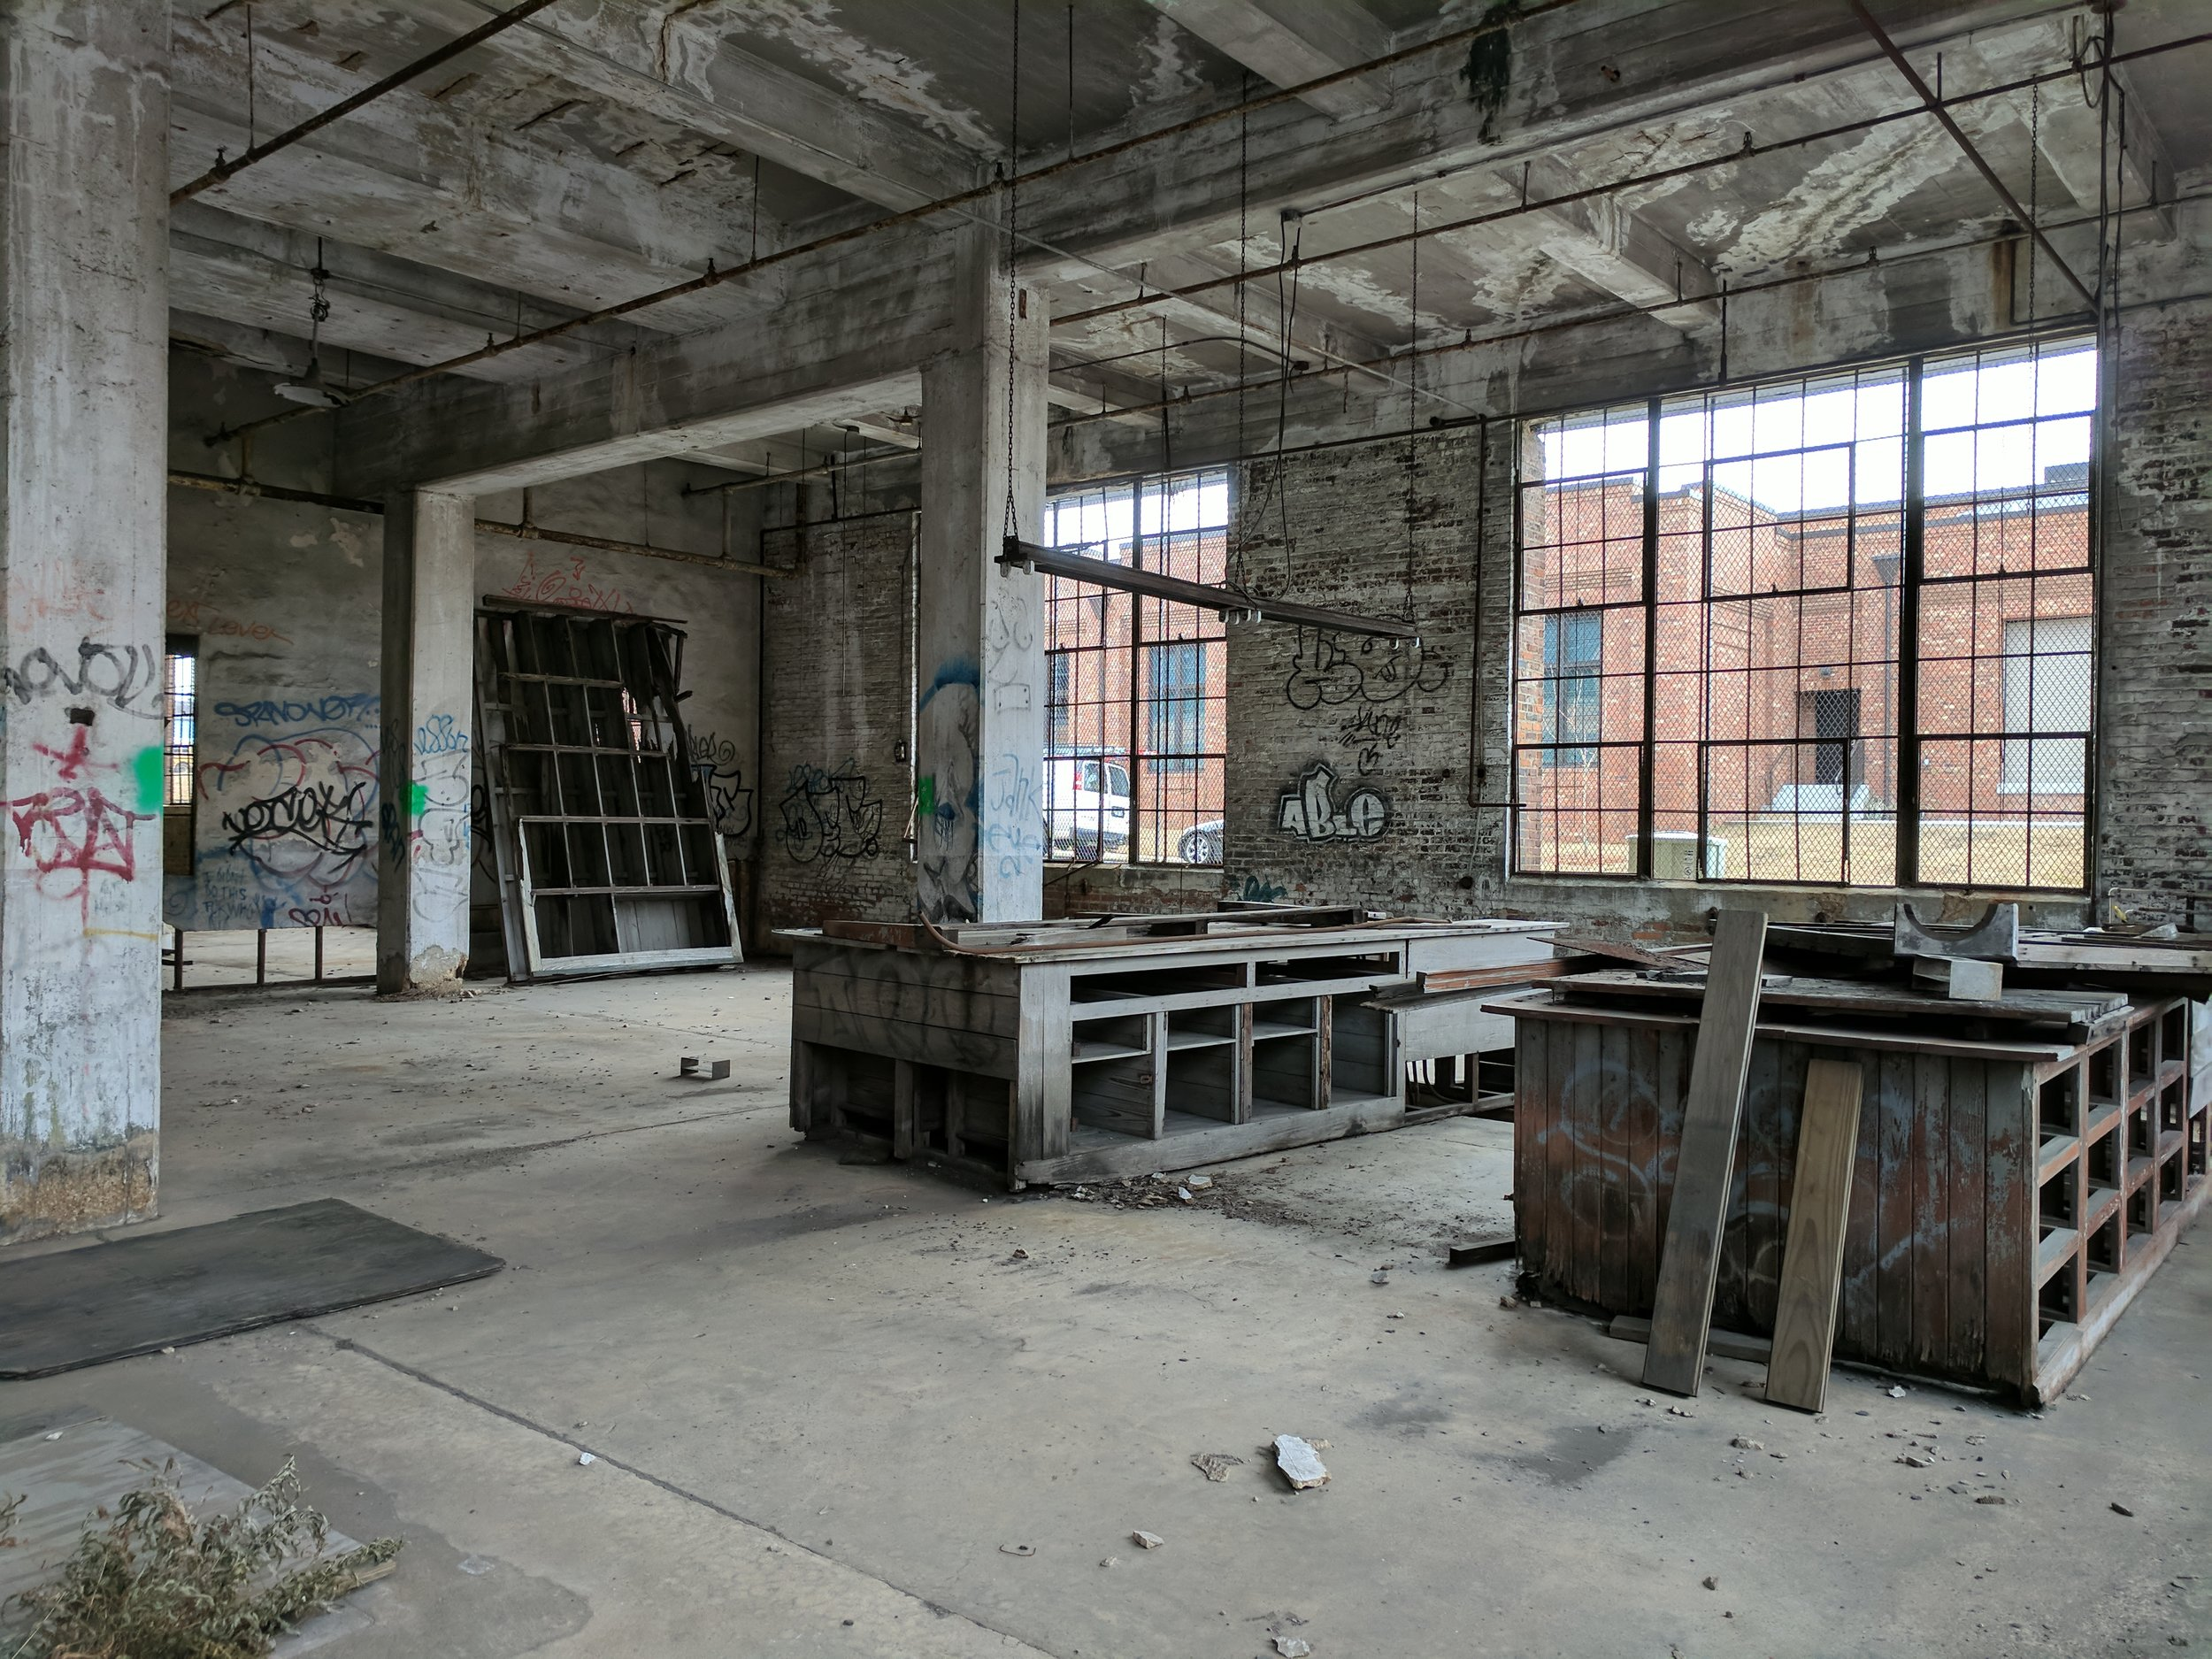 Interior photograph of workshop space that existed previously within the Central of Georgia Railway building. When designing a proposal for a revitalization of this space, it was important to our team to give homage to the history of the building and preserve the legacy that was created in this historic building.